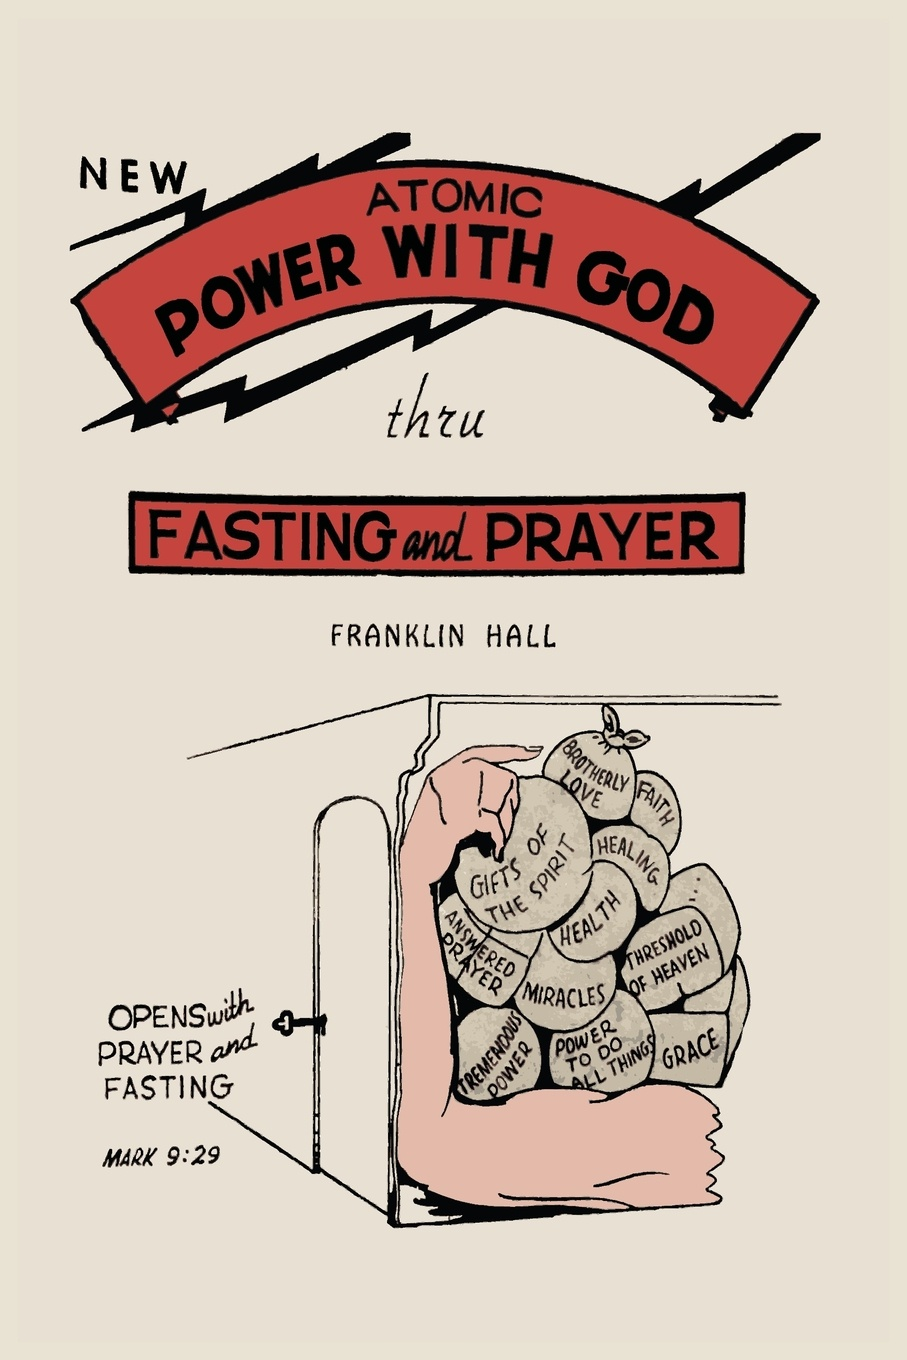 Franklin Hall Atomic Power with God, Through Fasting and Prayer